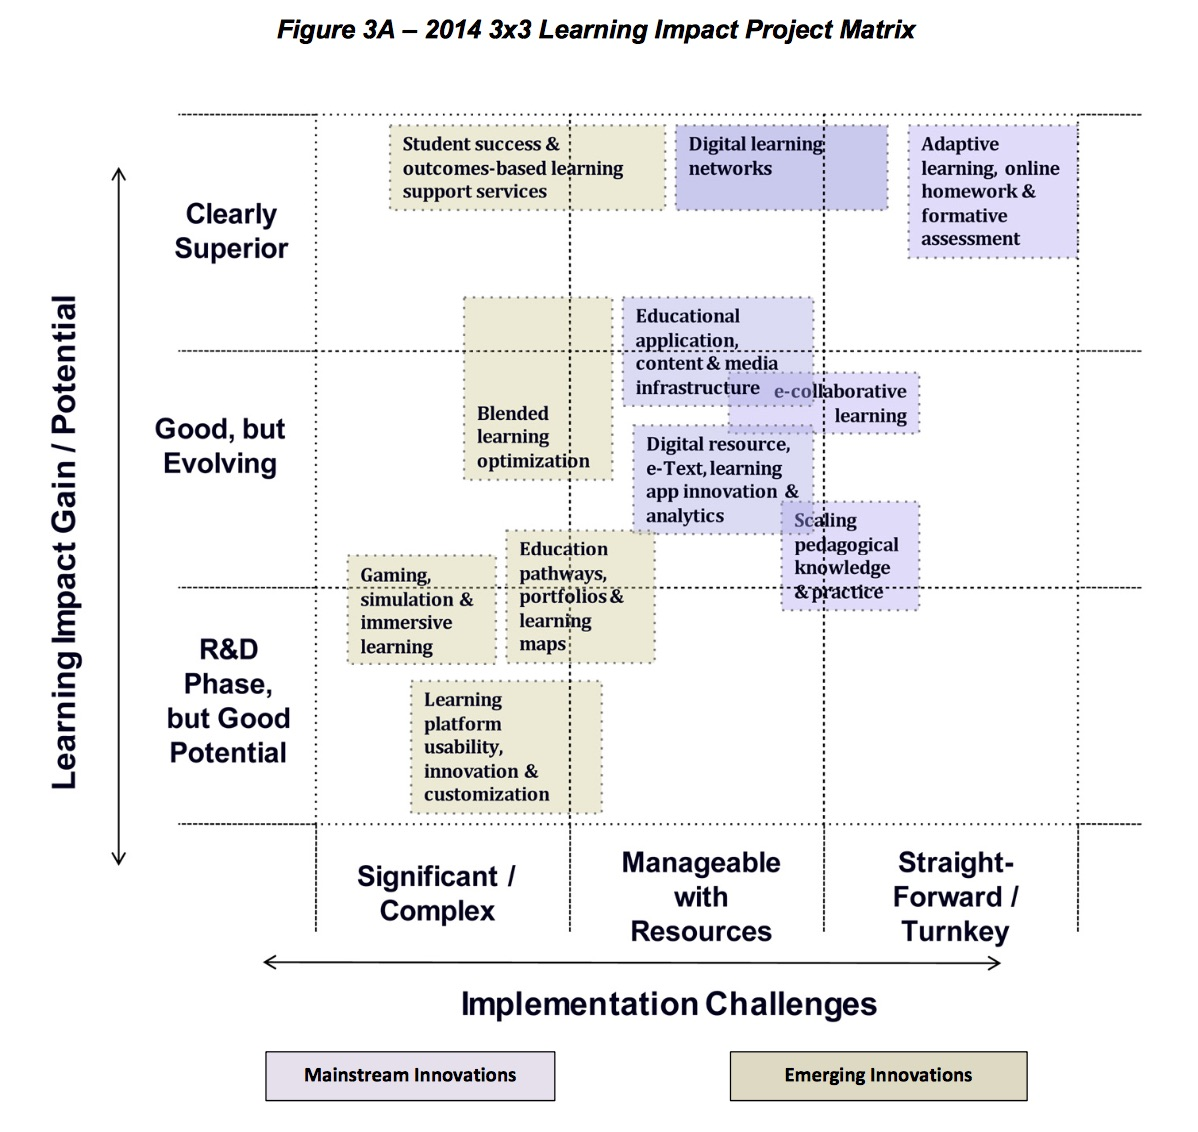 LearningImpactProjectMatrix14